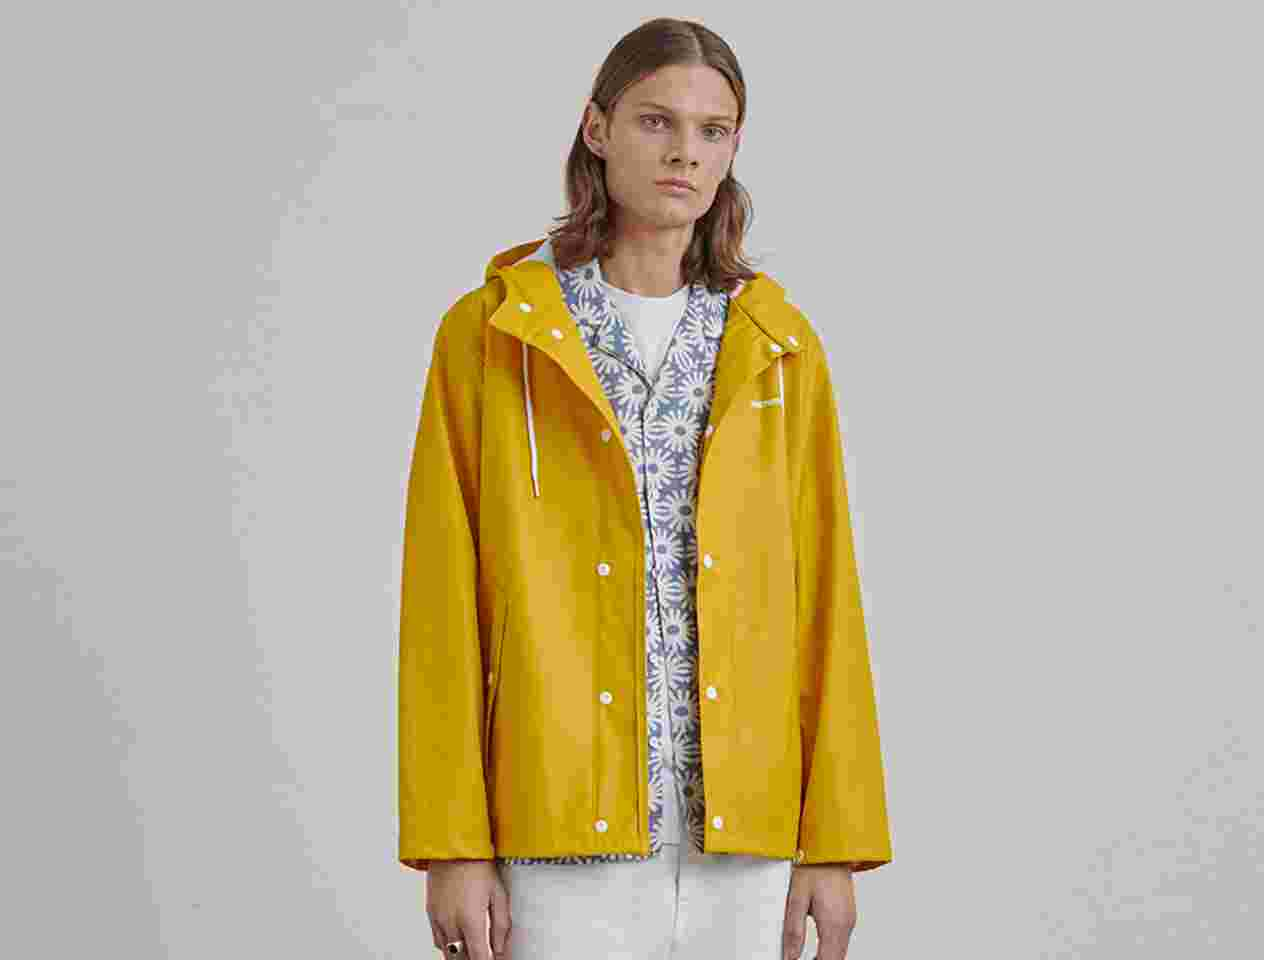 Model in Tretorn yellow jacket